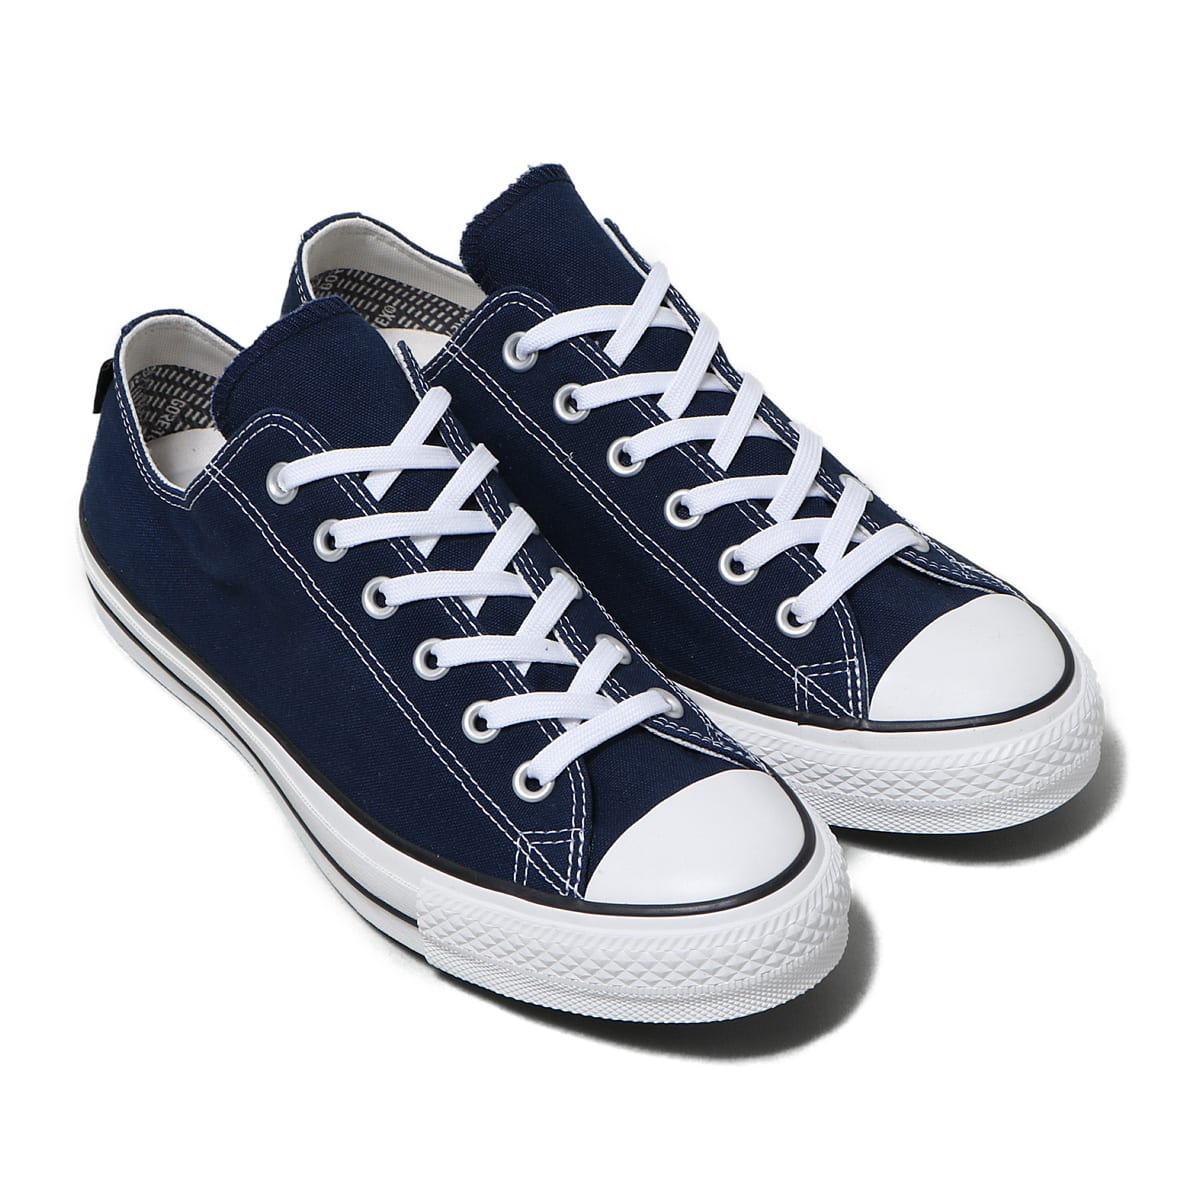 CONVERSE ALL STAR 100 GORE-TEX OX NAVY 20SS-S_photo_large